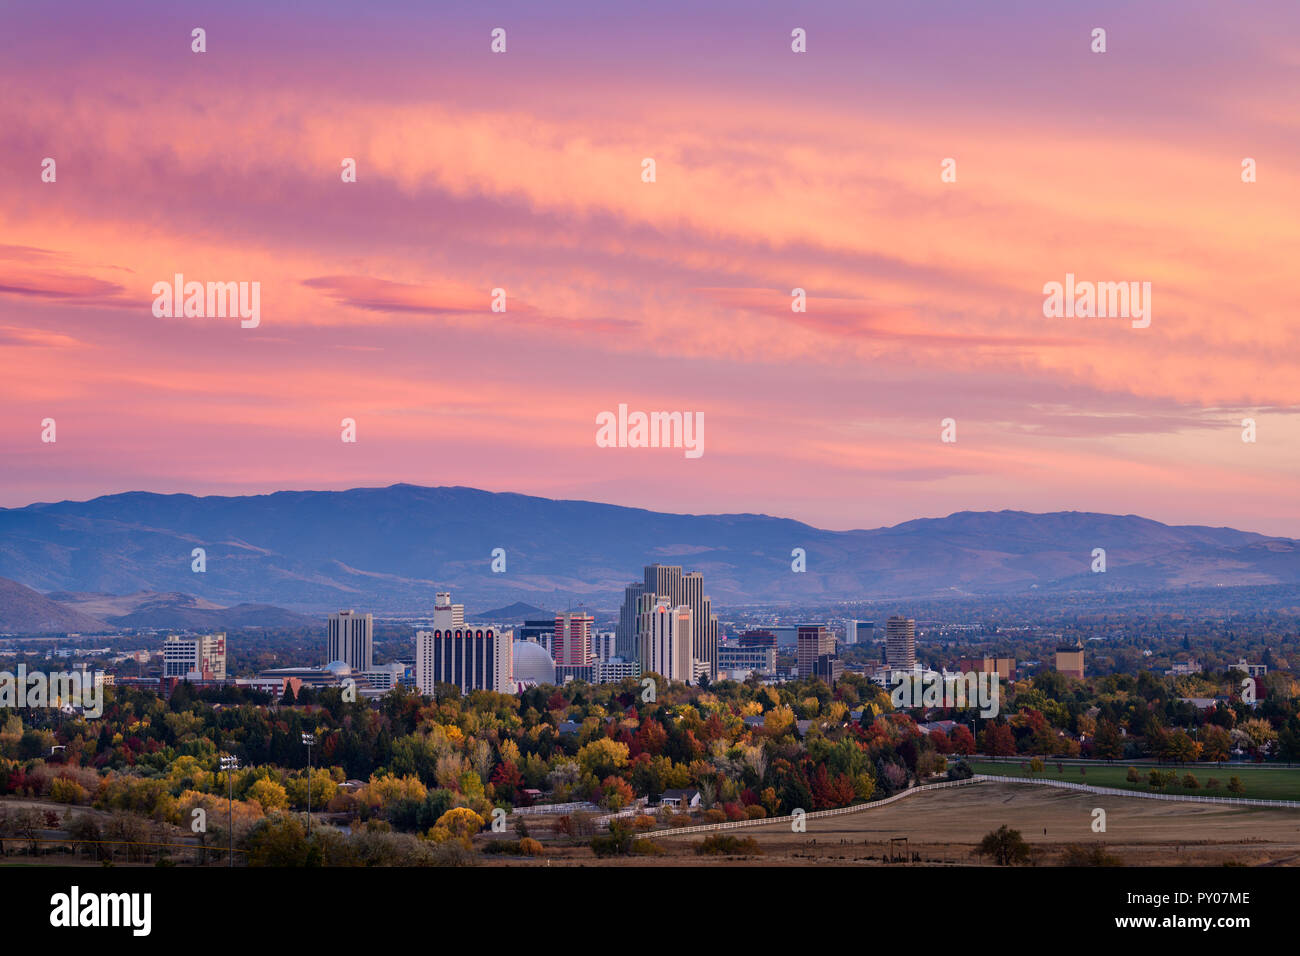 A dramatic sunset over the downtown Reno, Nevada casino skyline with fall colors from Rancho San Rafael Park in foreground. - Stock Image